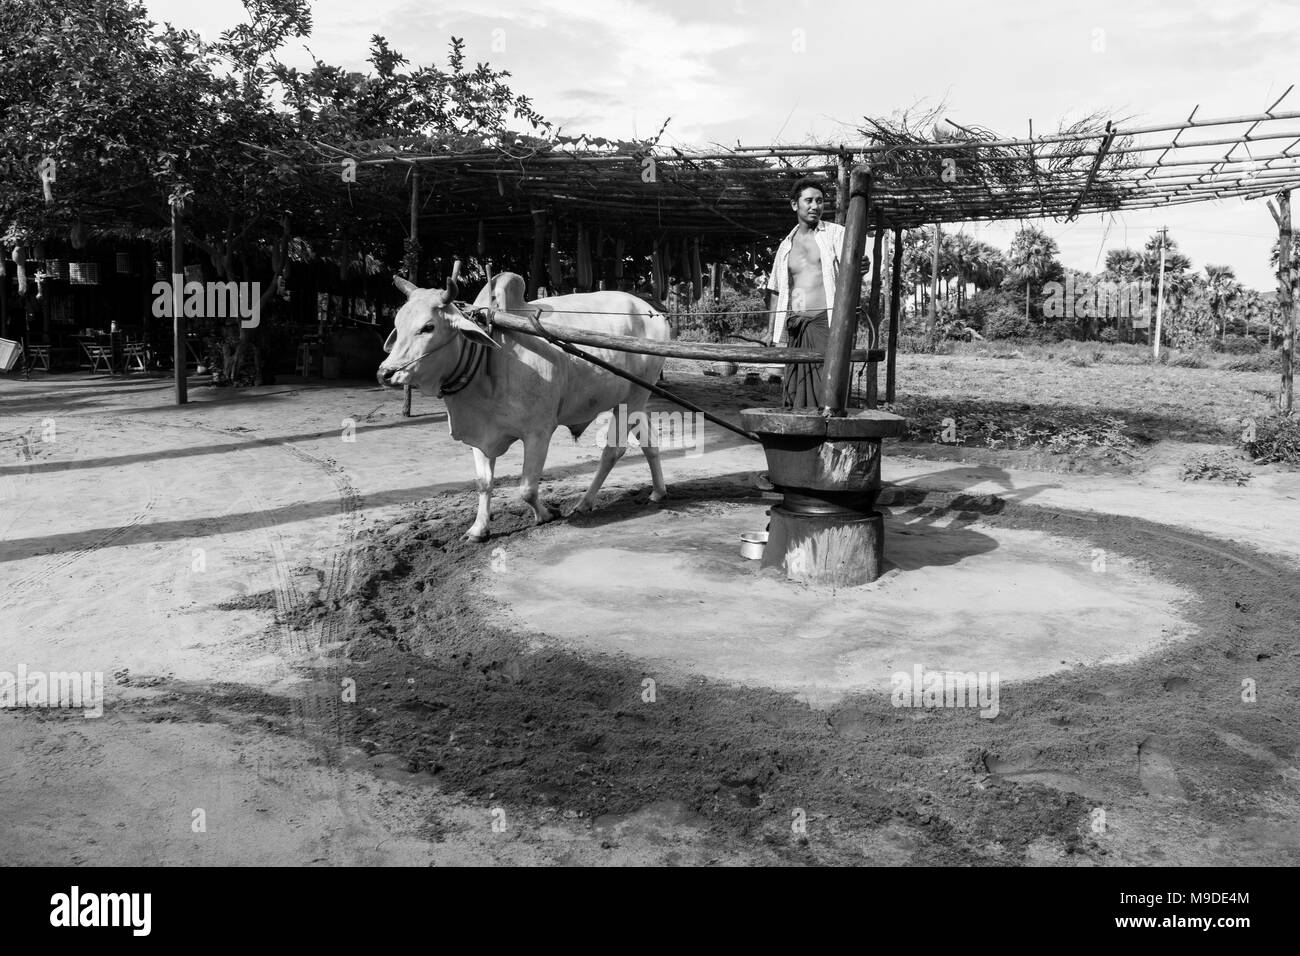 A Burmese farmer in longyi standing on an oil mill, powered by an ox, pulled in circles to grind peanuts and produce peanut oil. Myanmar agriculture - Stock Image